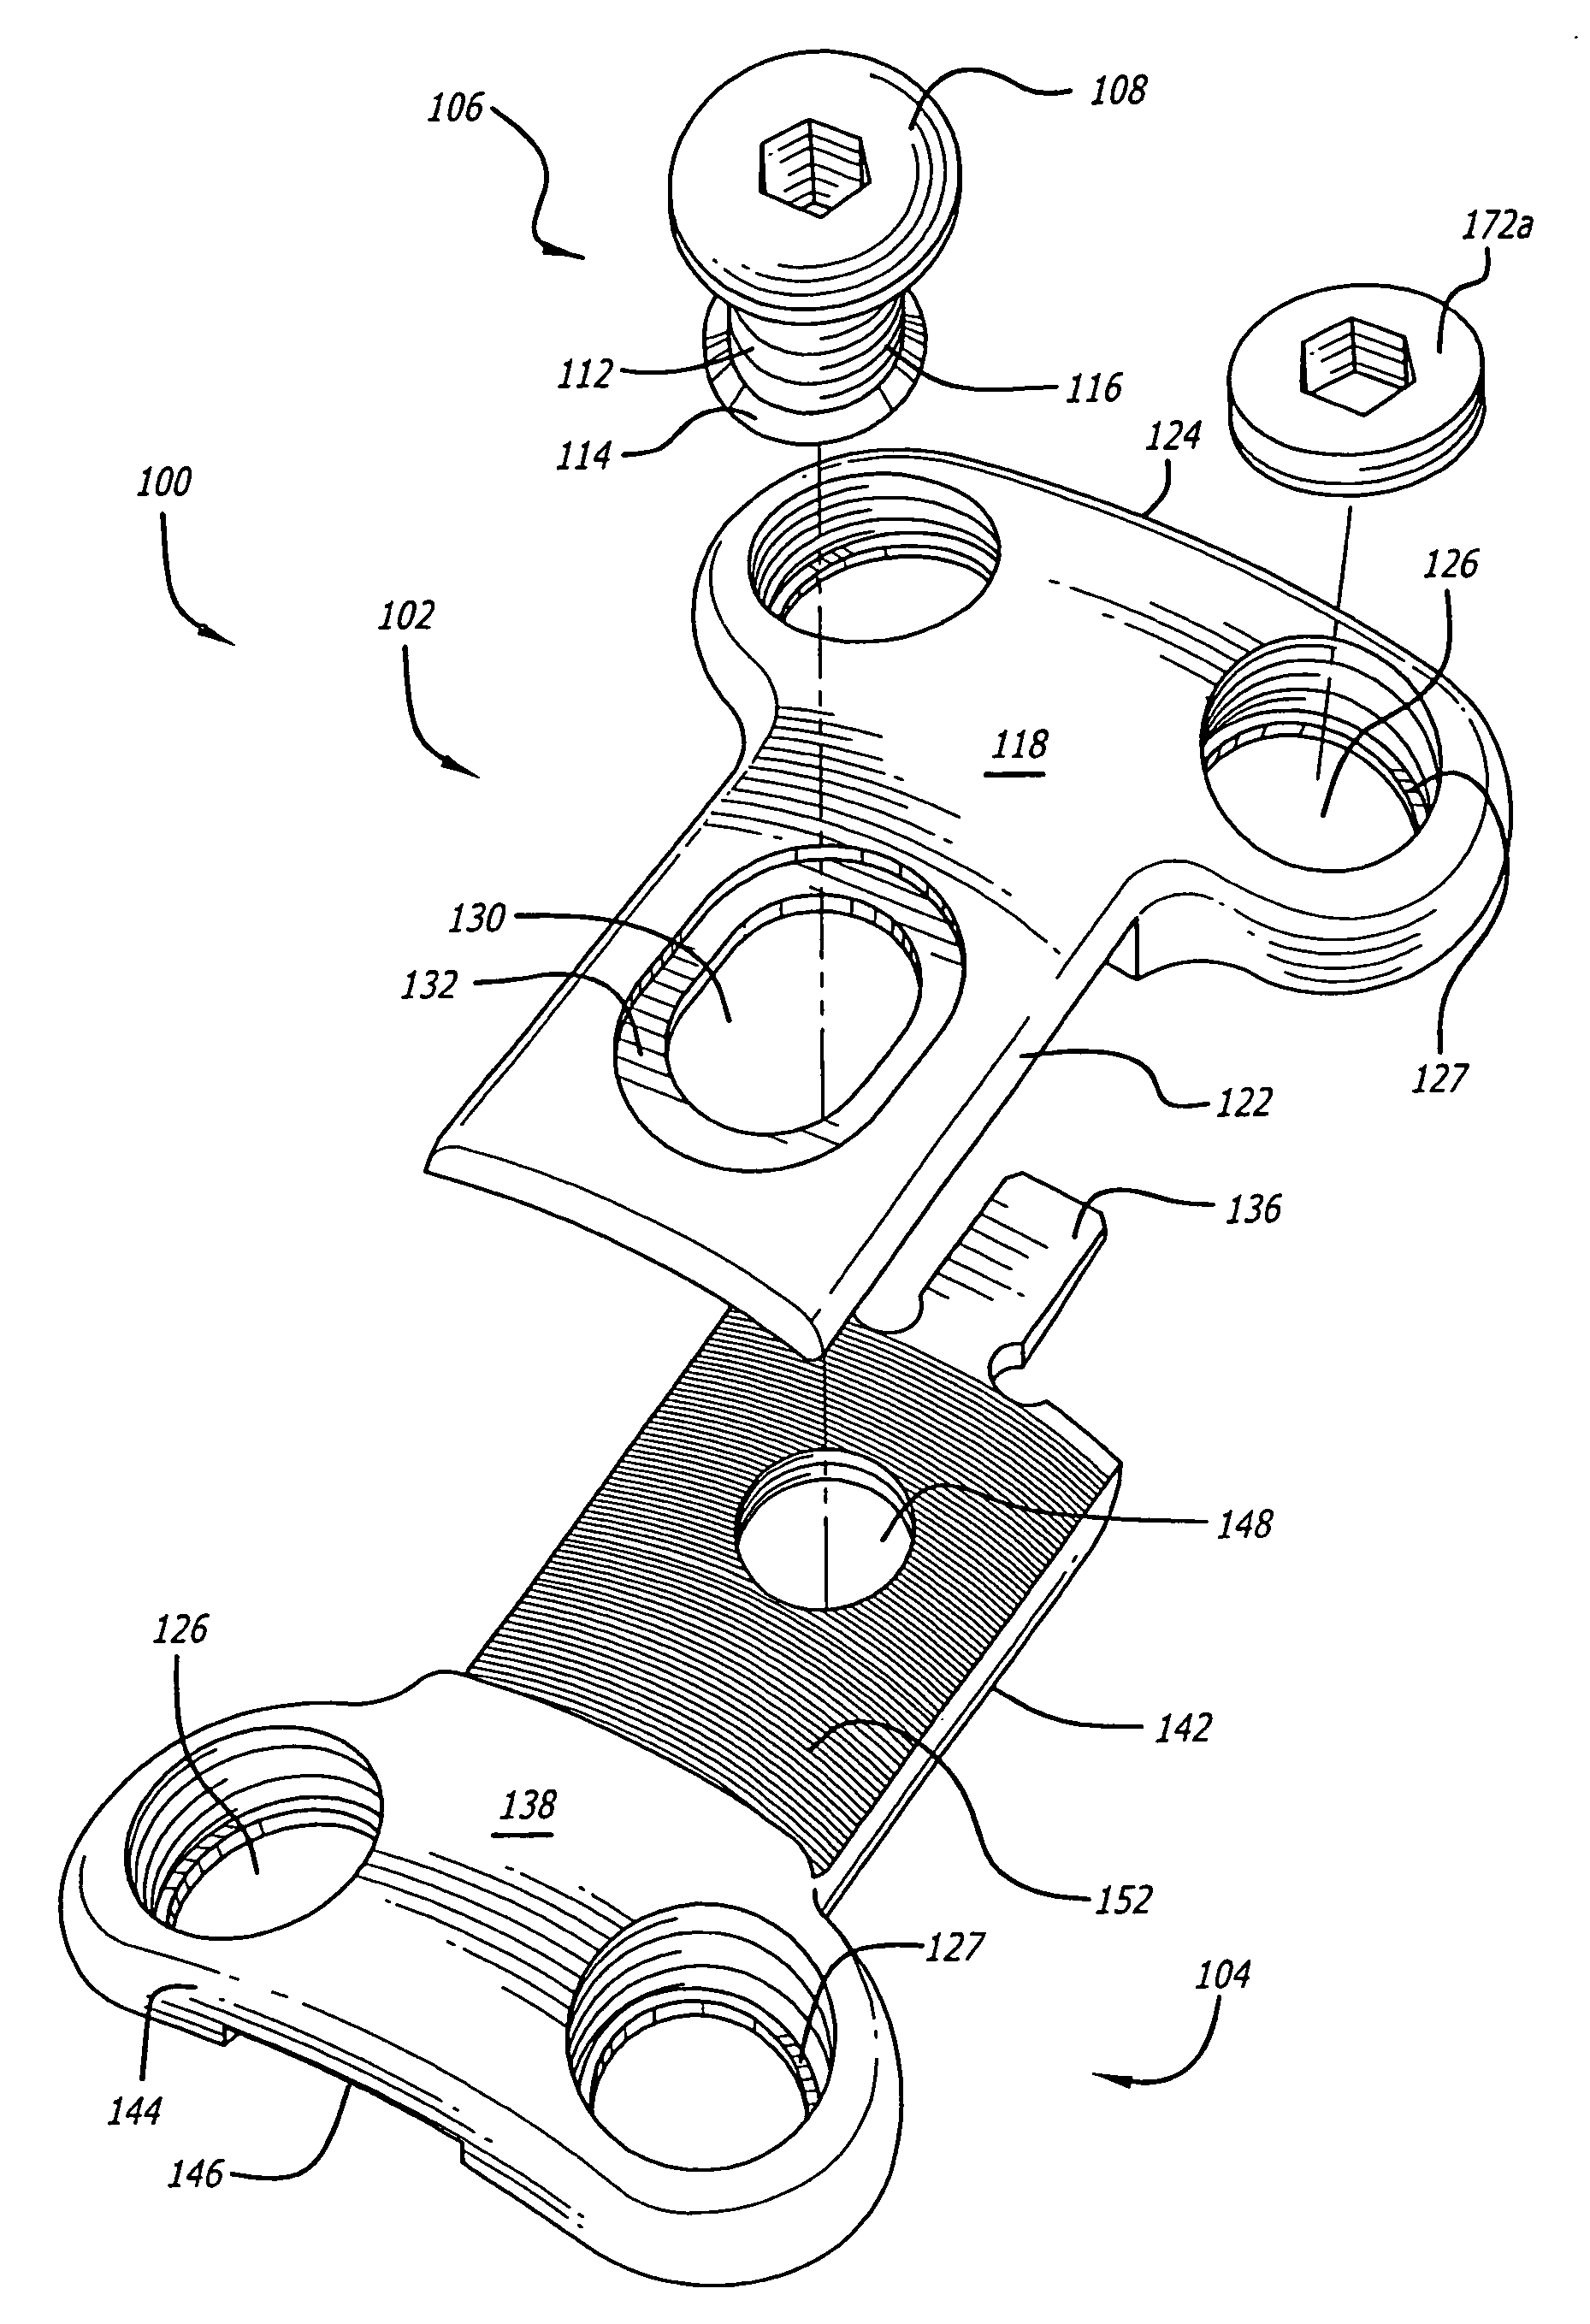 patent us7985224 method for installation of dynamic single lock NBCOT Ortho patent drawing